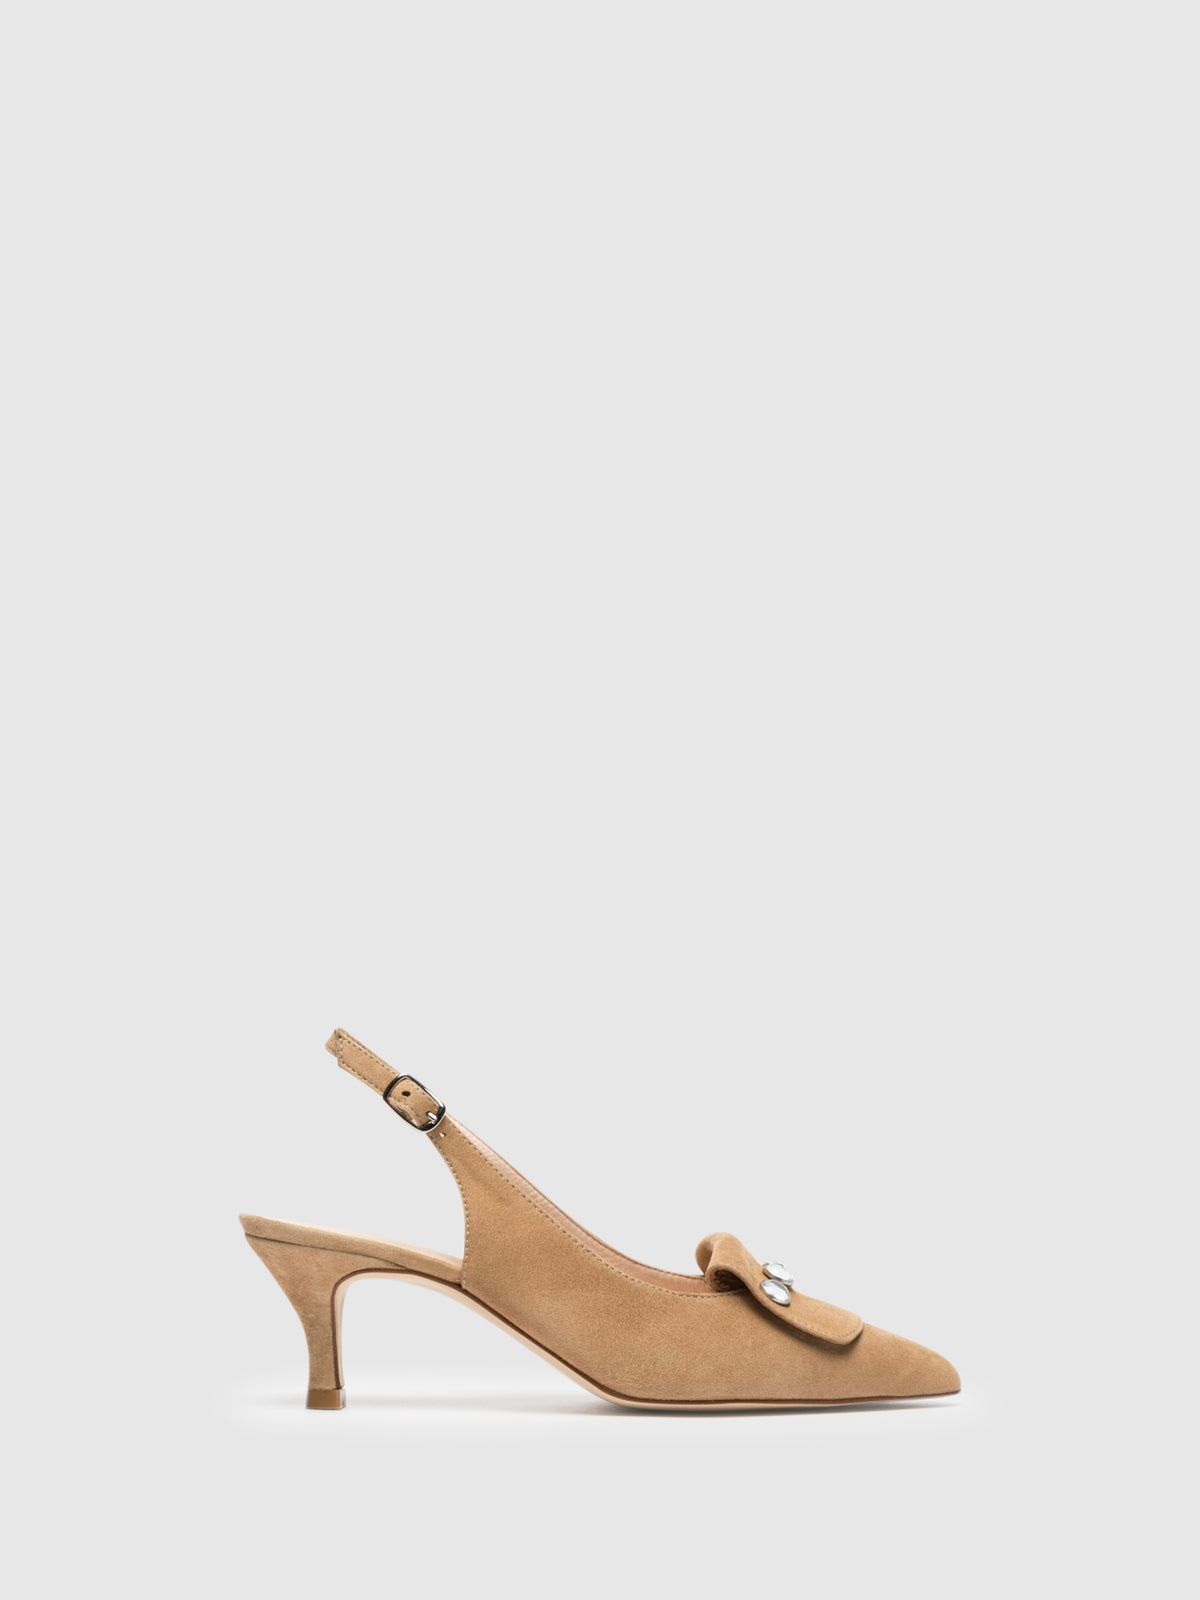 Sofia Costa Beige Ankle Strap Shoes